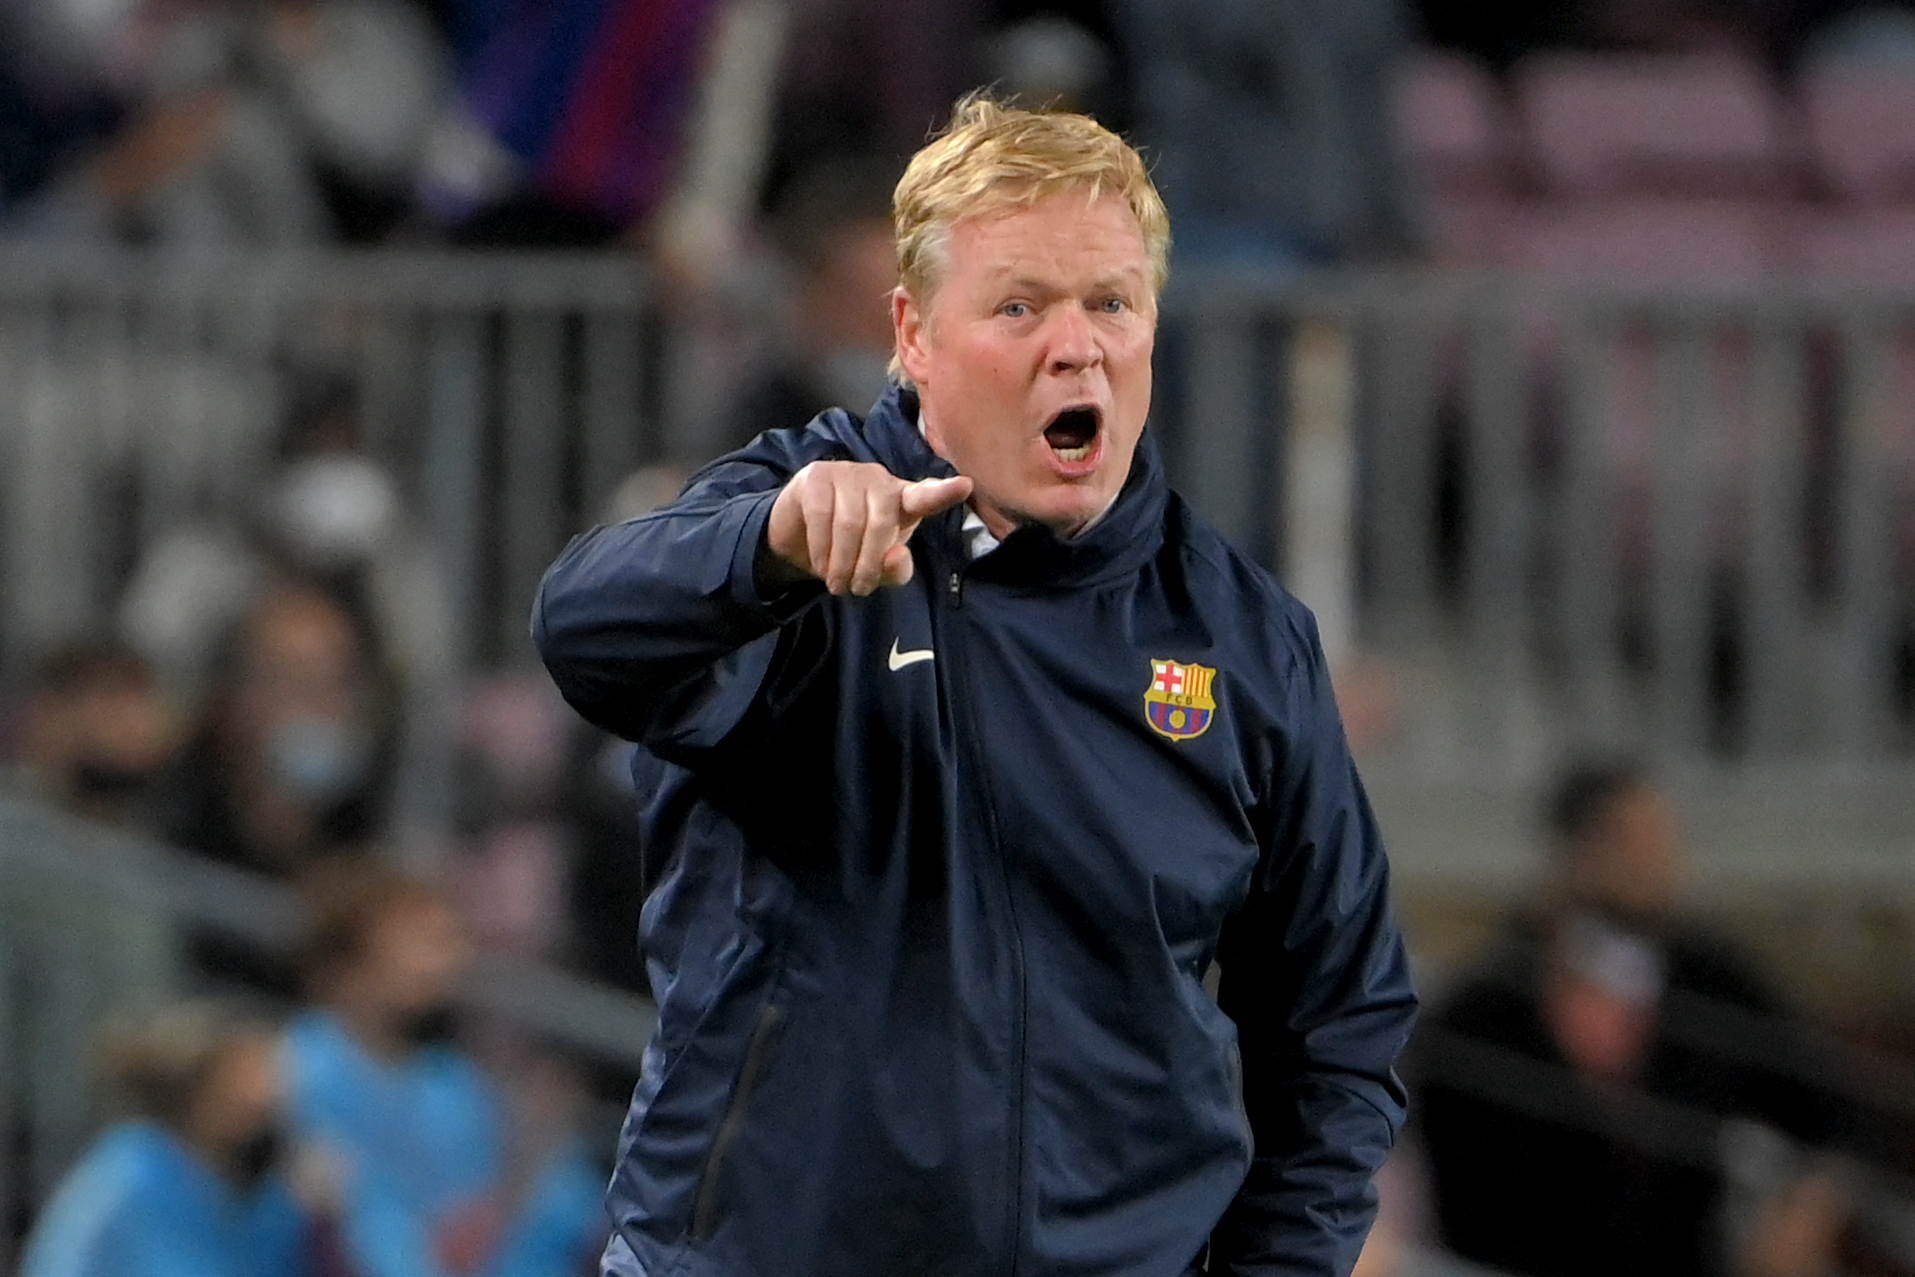 Angry Barcelona fans insult coach Koeman after Real Madrid defeat